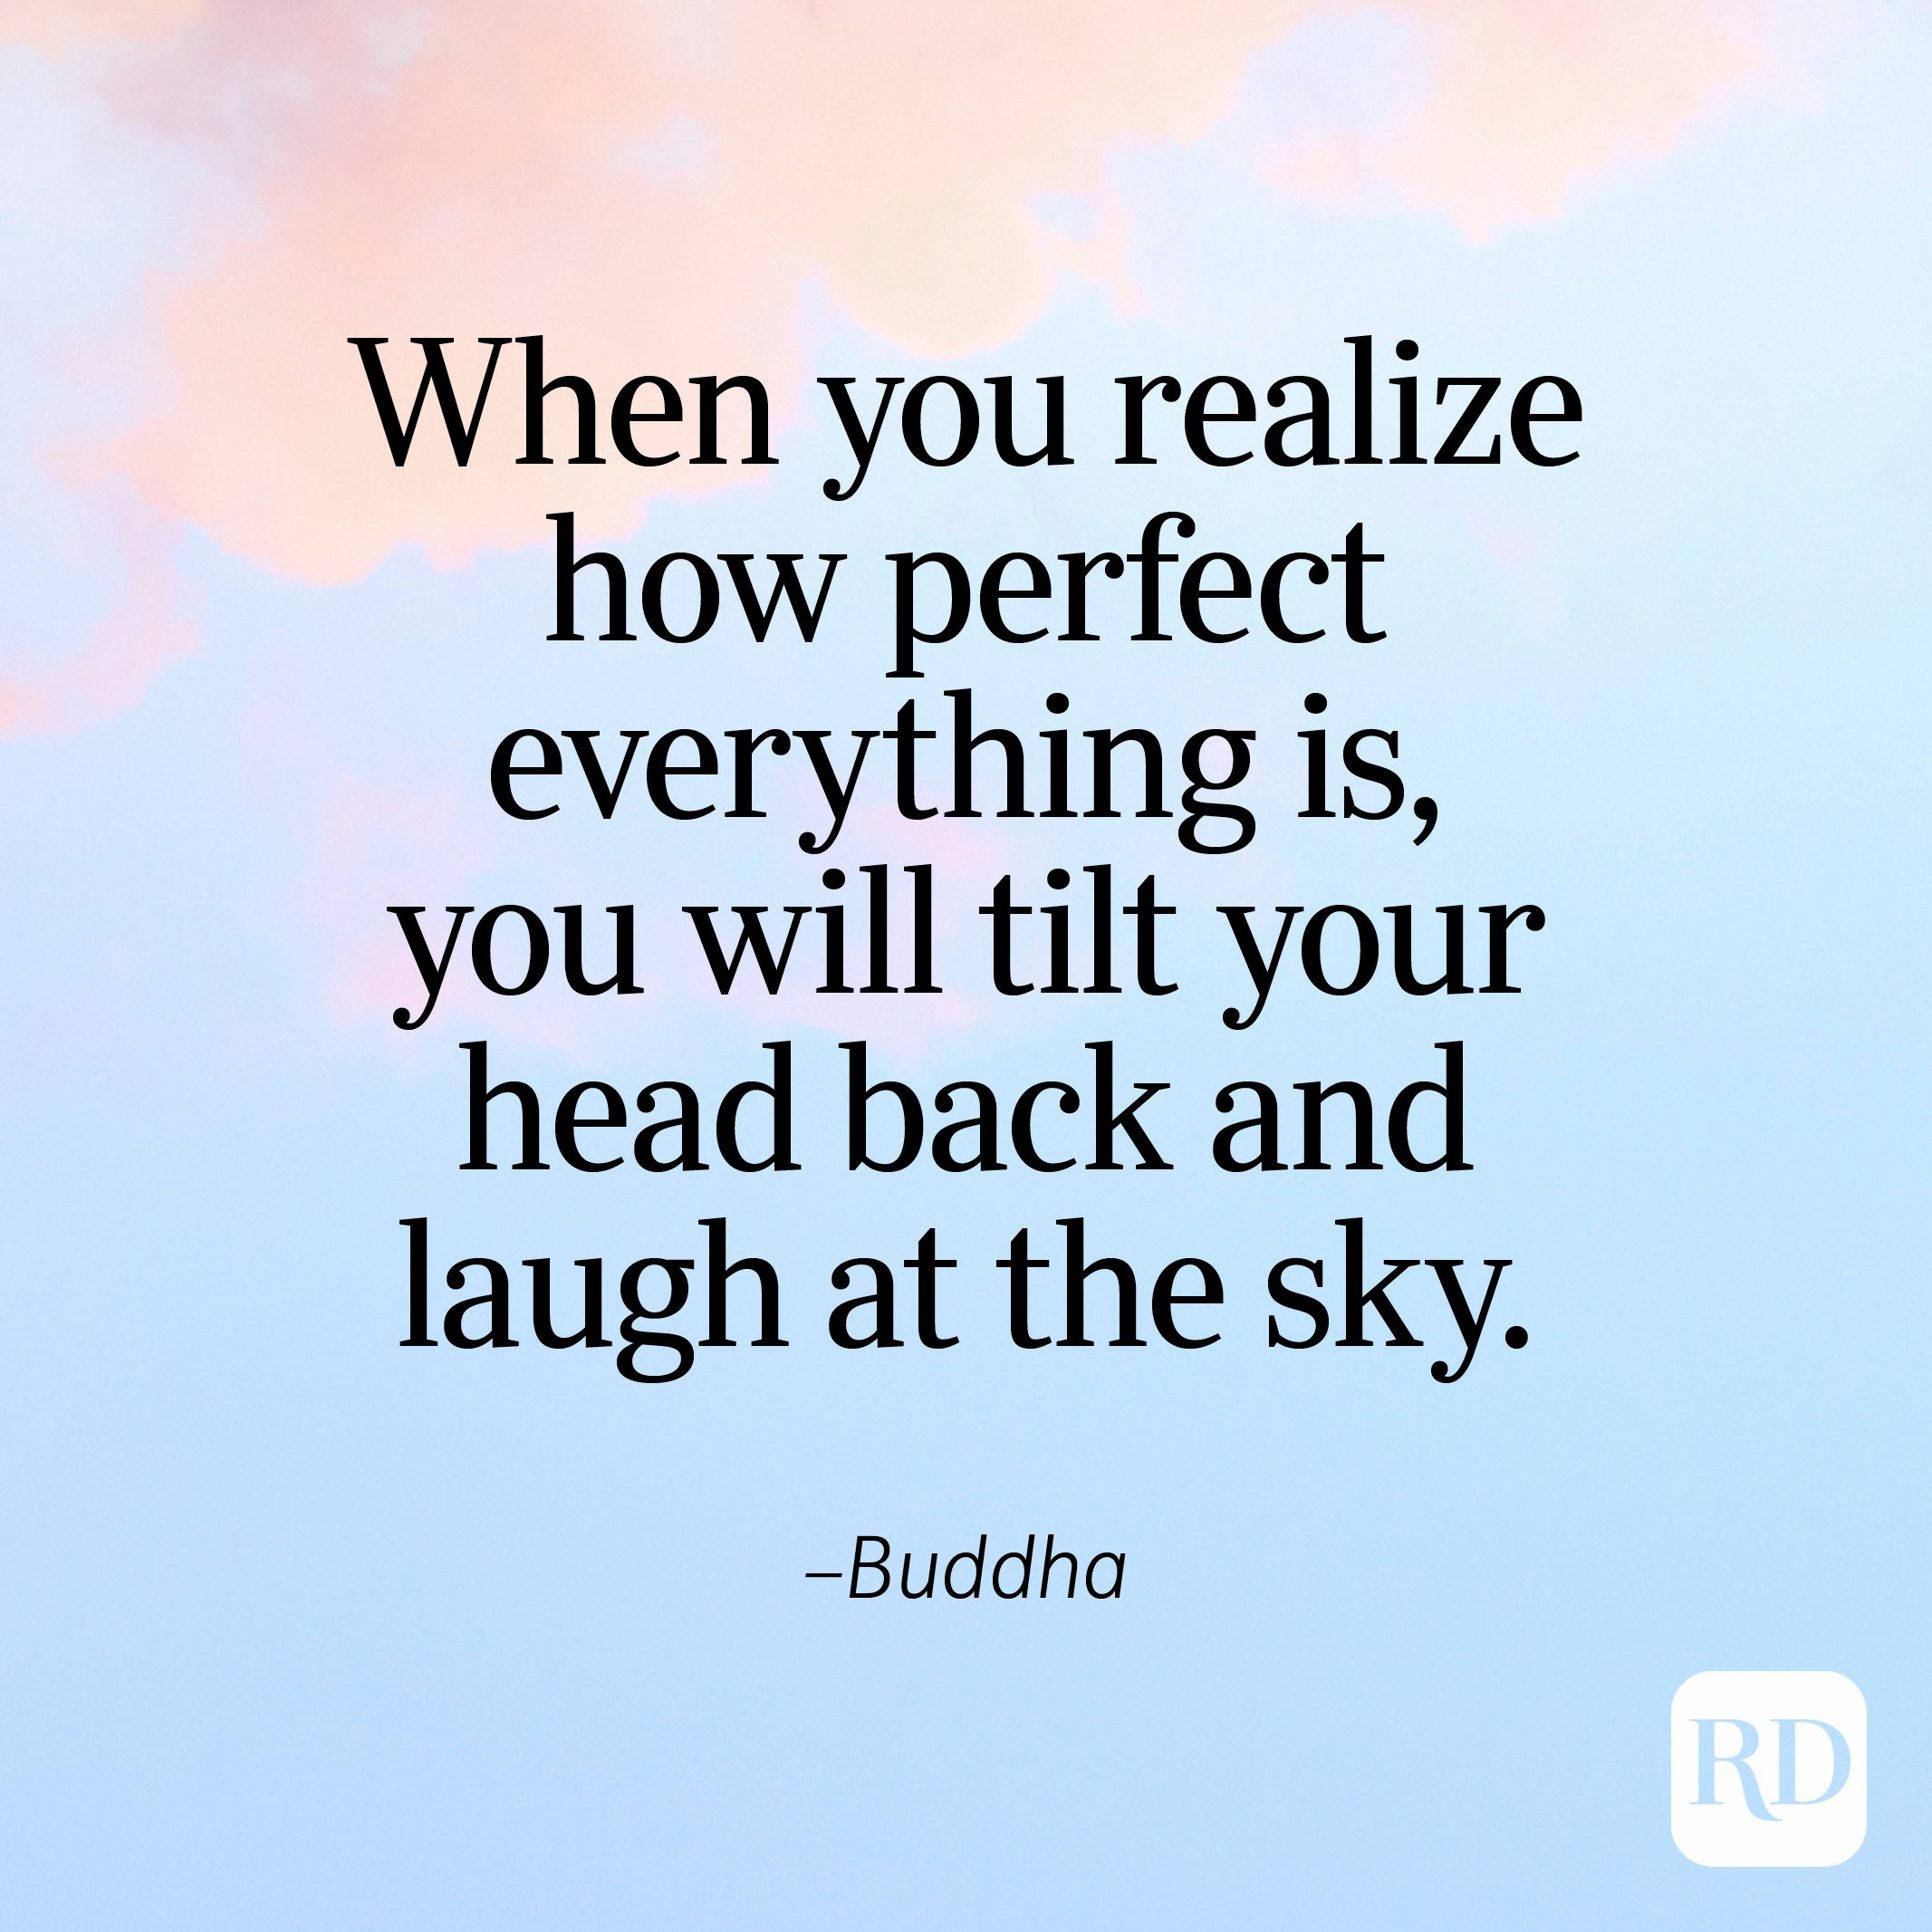 """""""When you realize how perfect everything is, you will tilt your head back and laugh at the sky."""" —Buddha"""